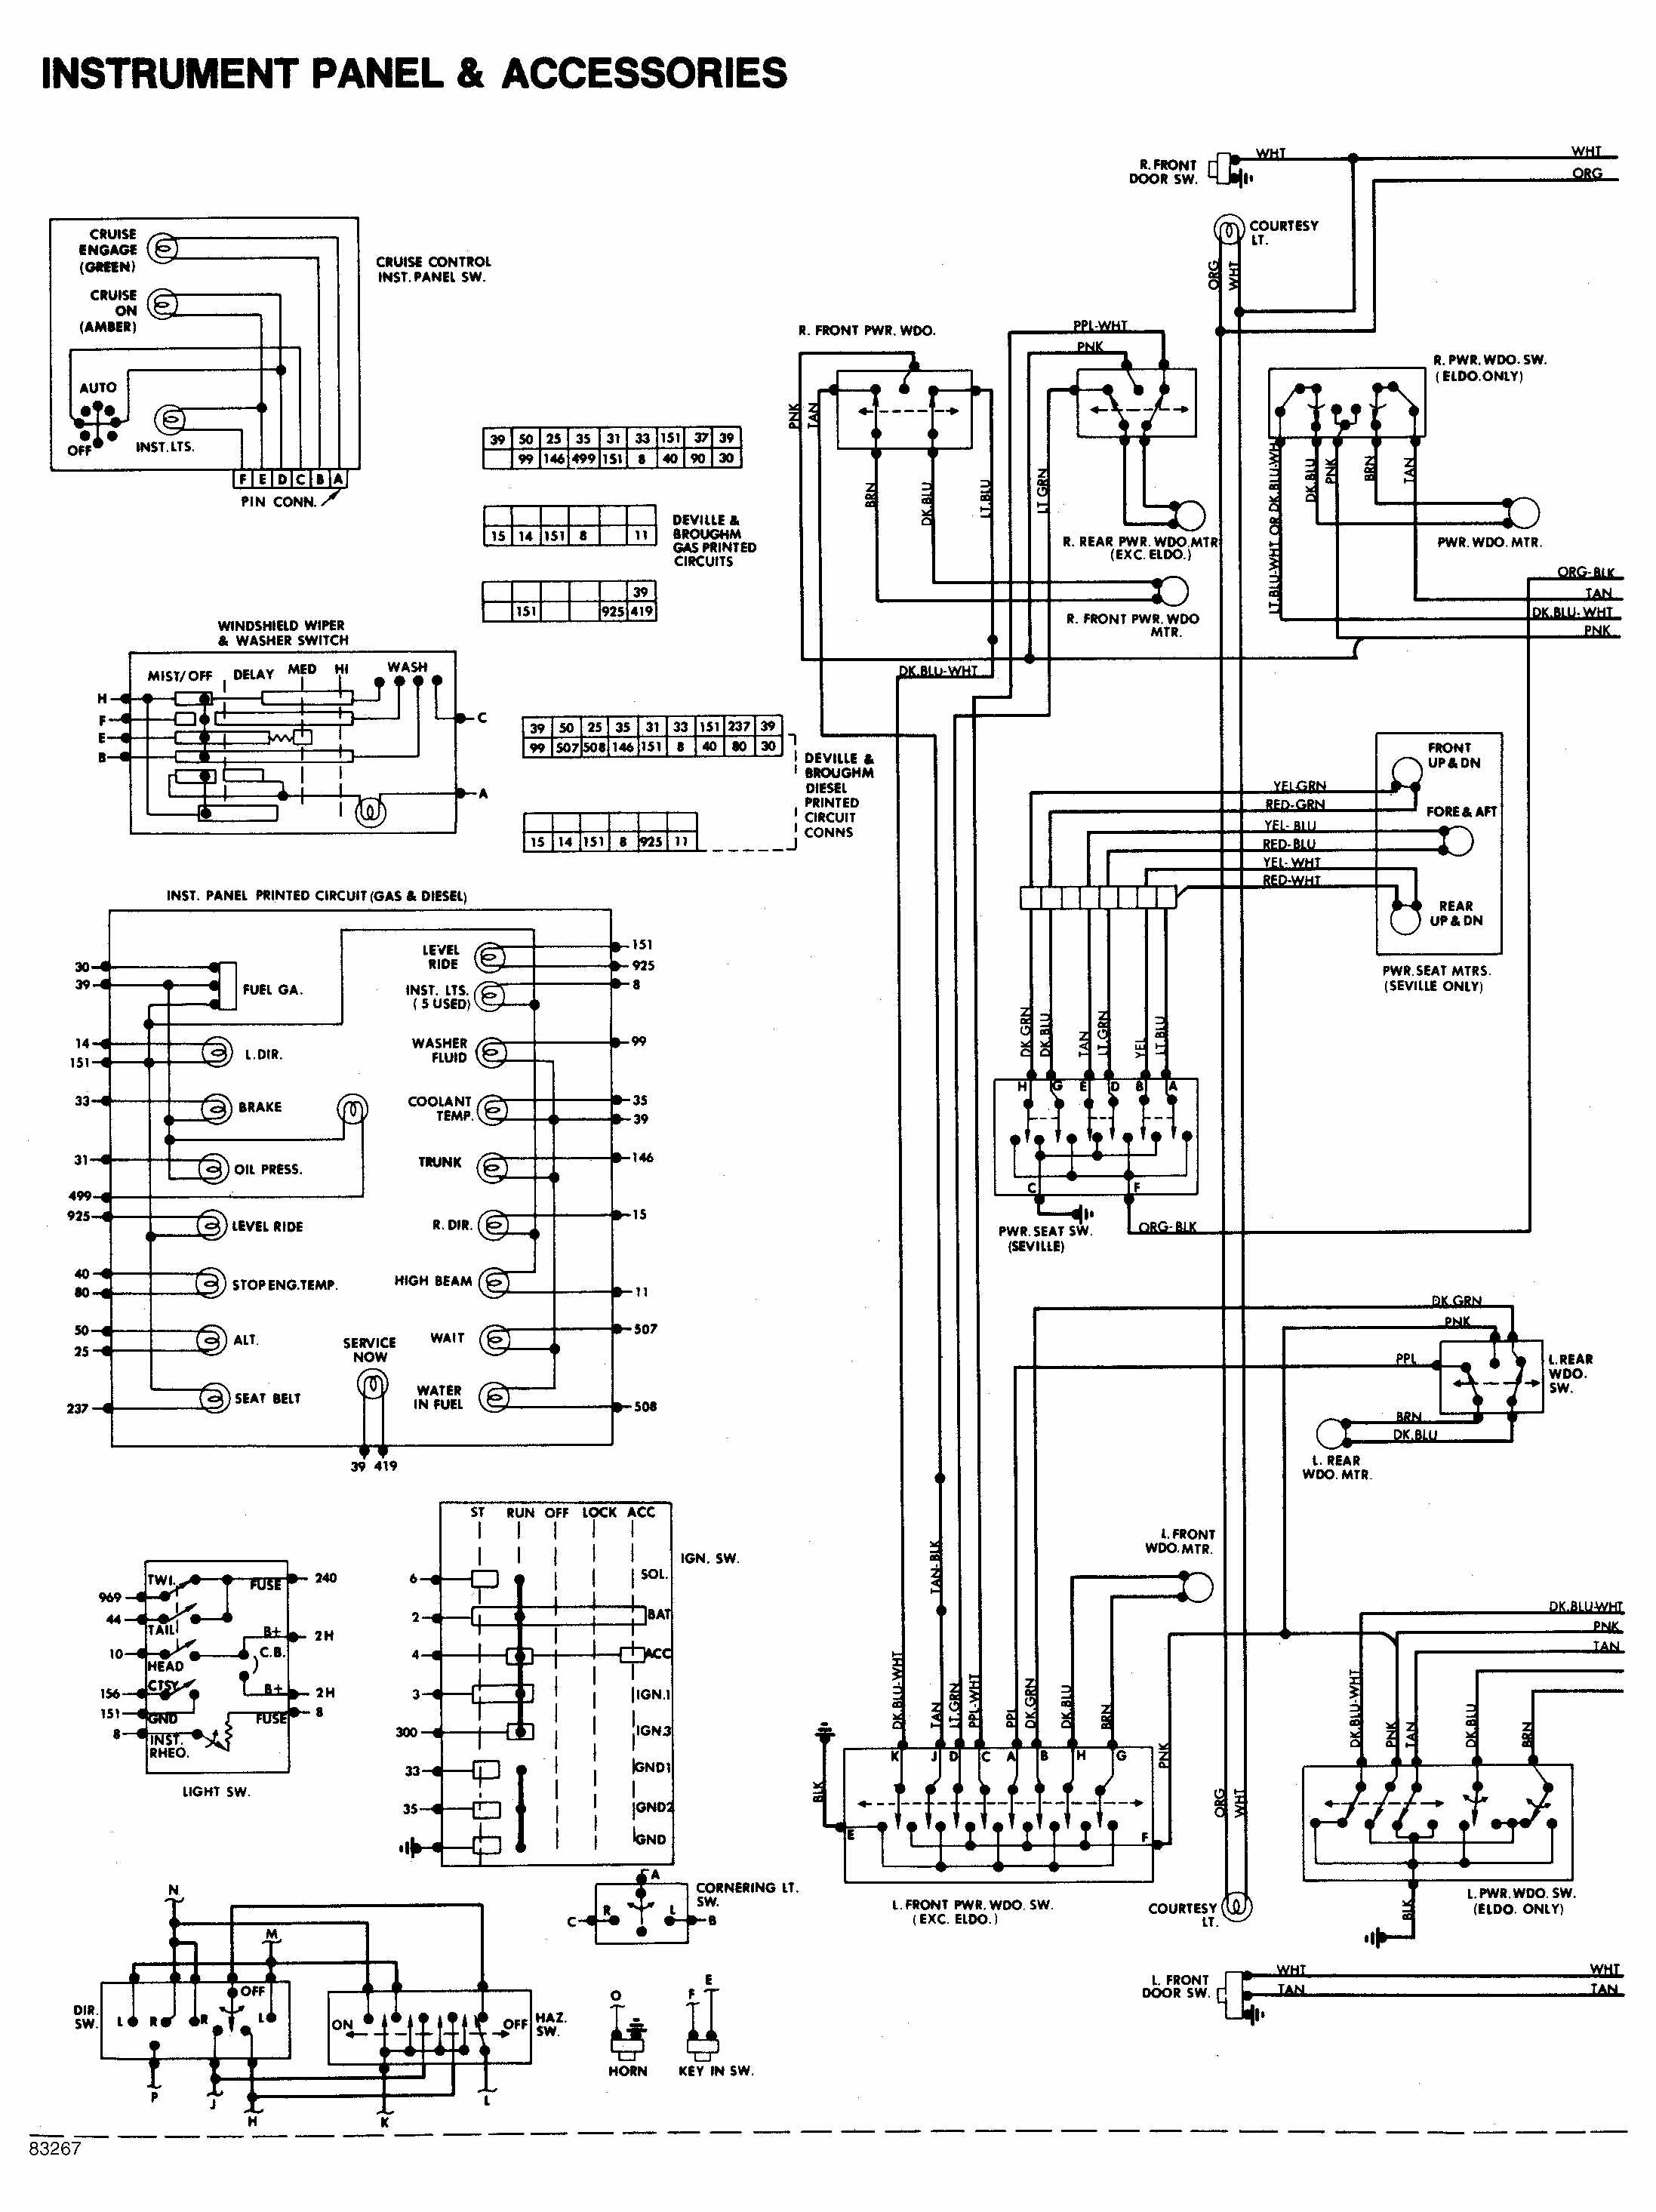 instrument panel and accessories wiring diagram of 1984 cadillac deville chevy diagrams instrument wiring diagram at honlapkeszites.co